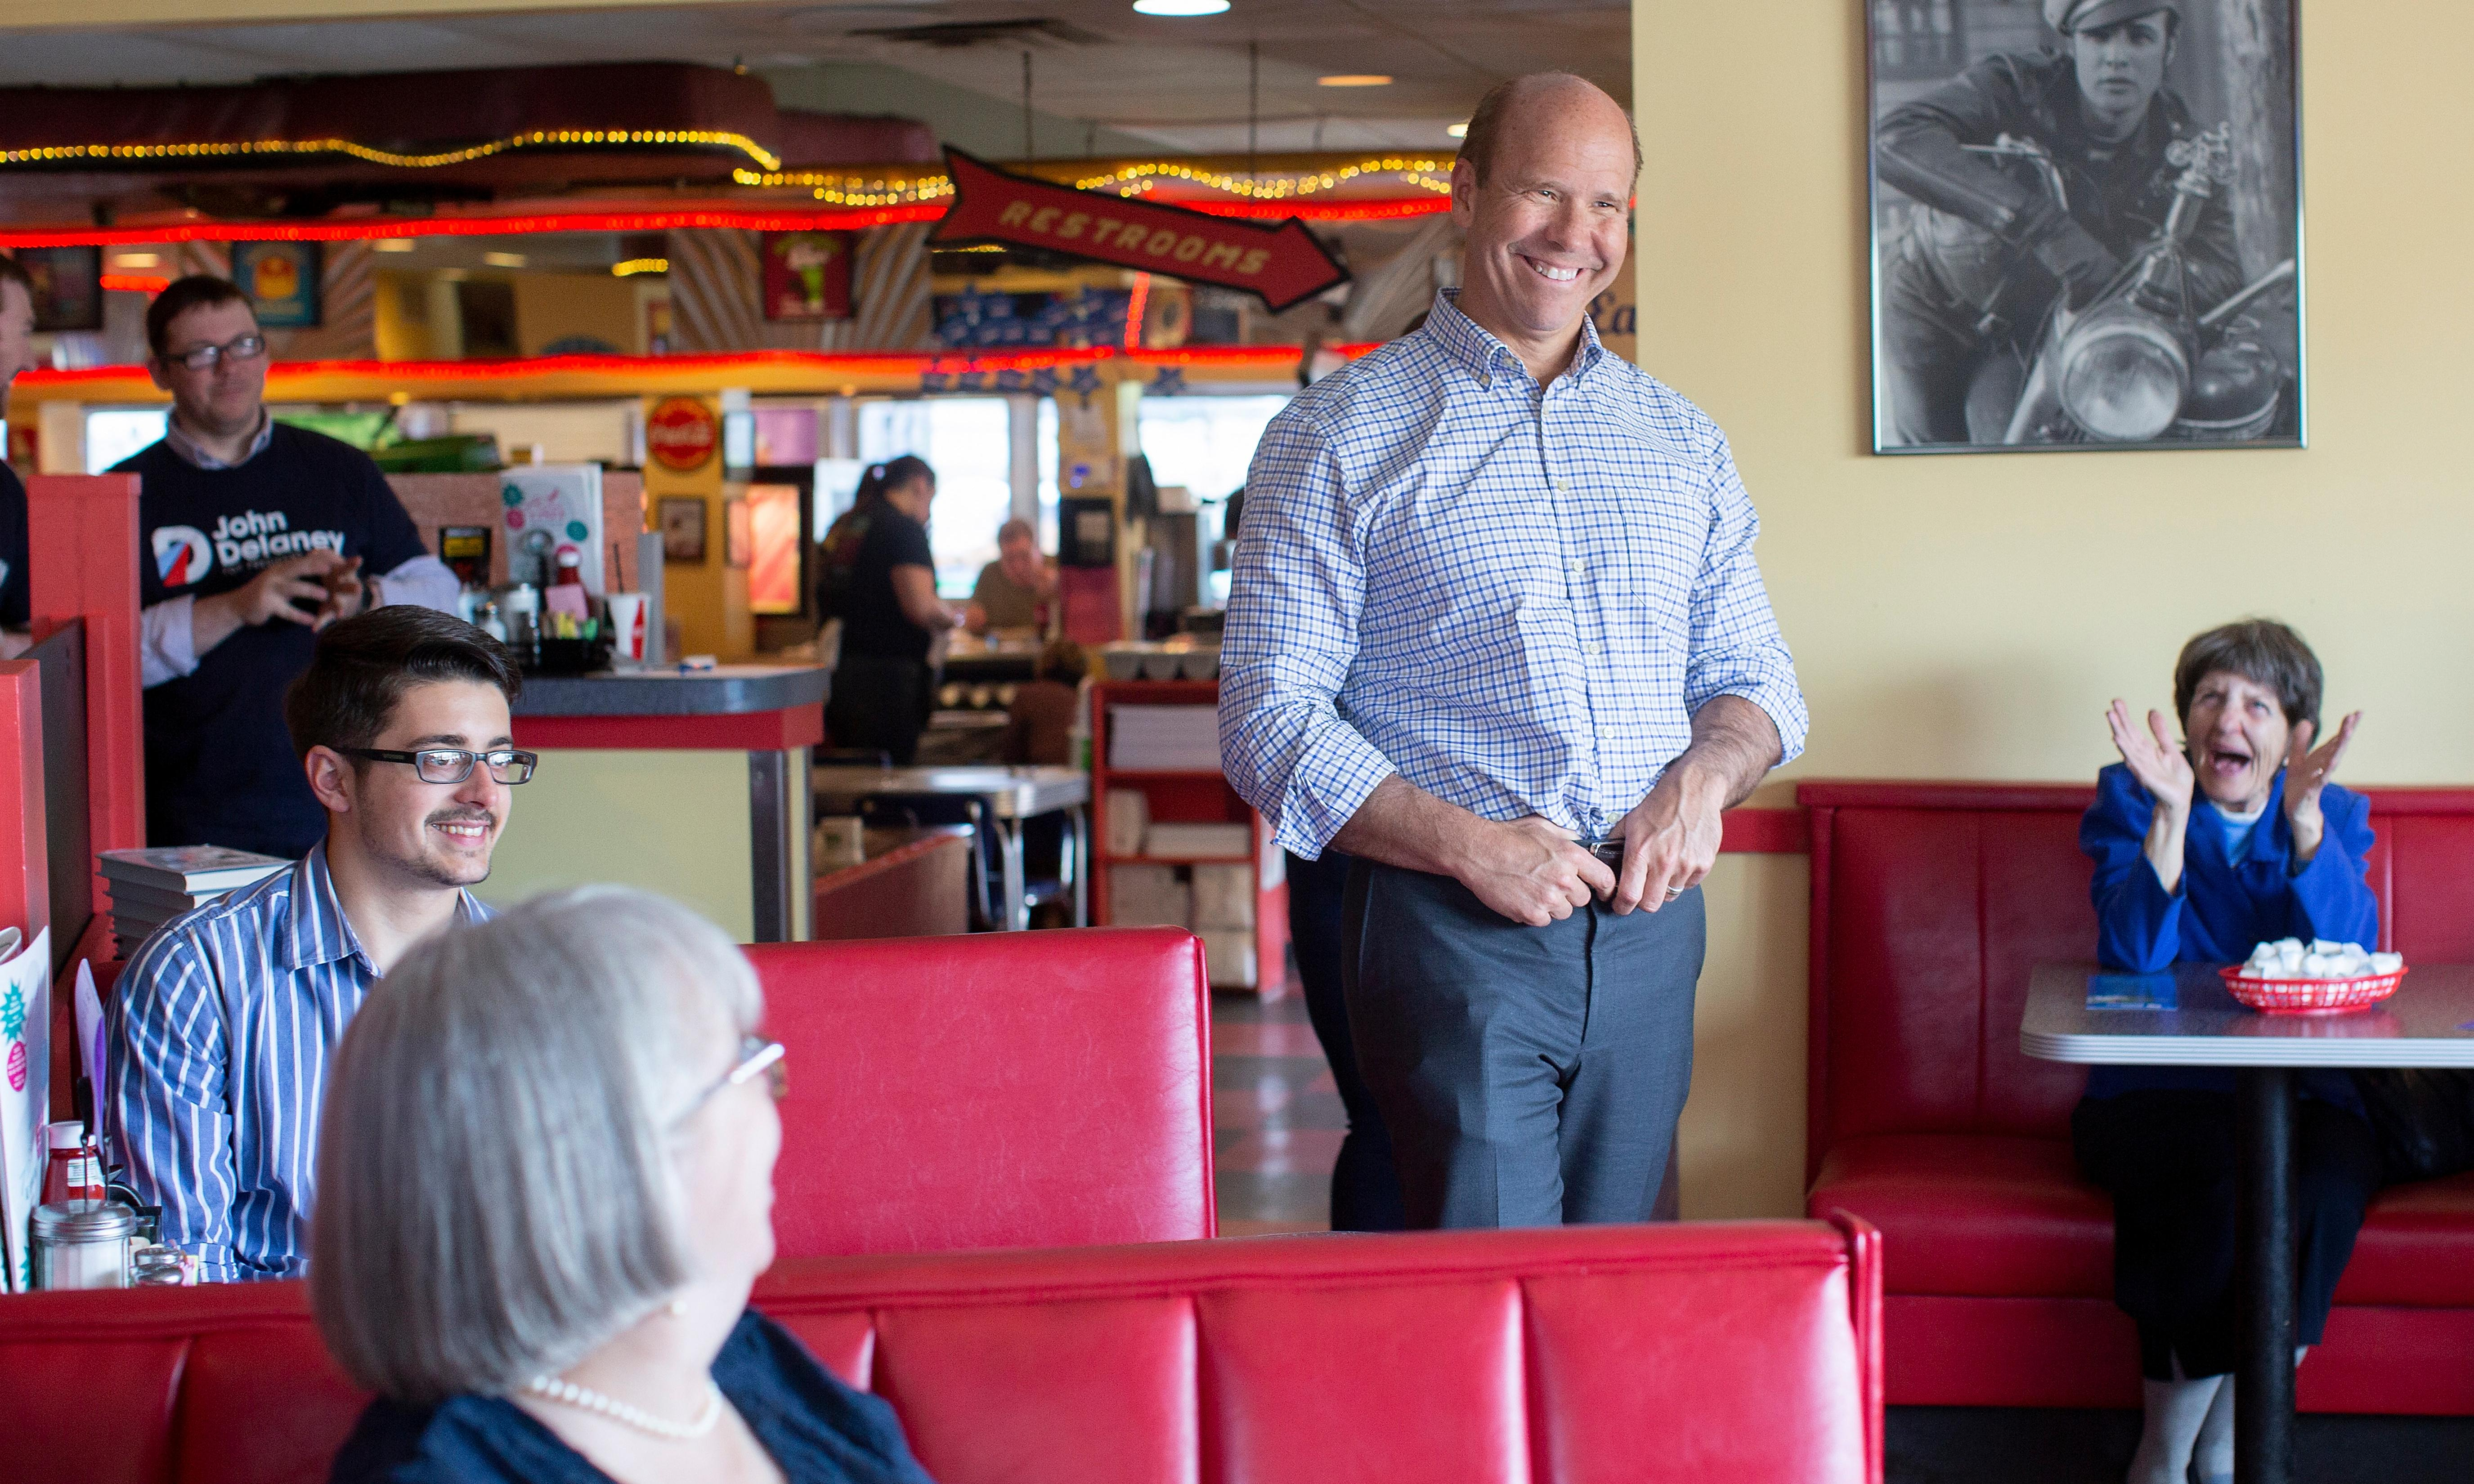 2020 candidate John Delaney pitches vastly unusual climate change plan